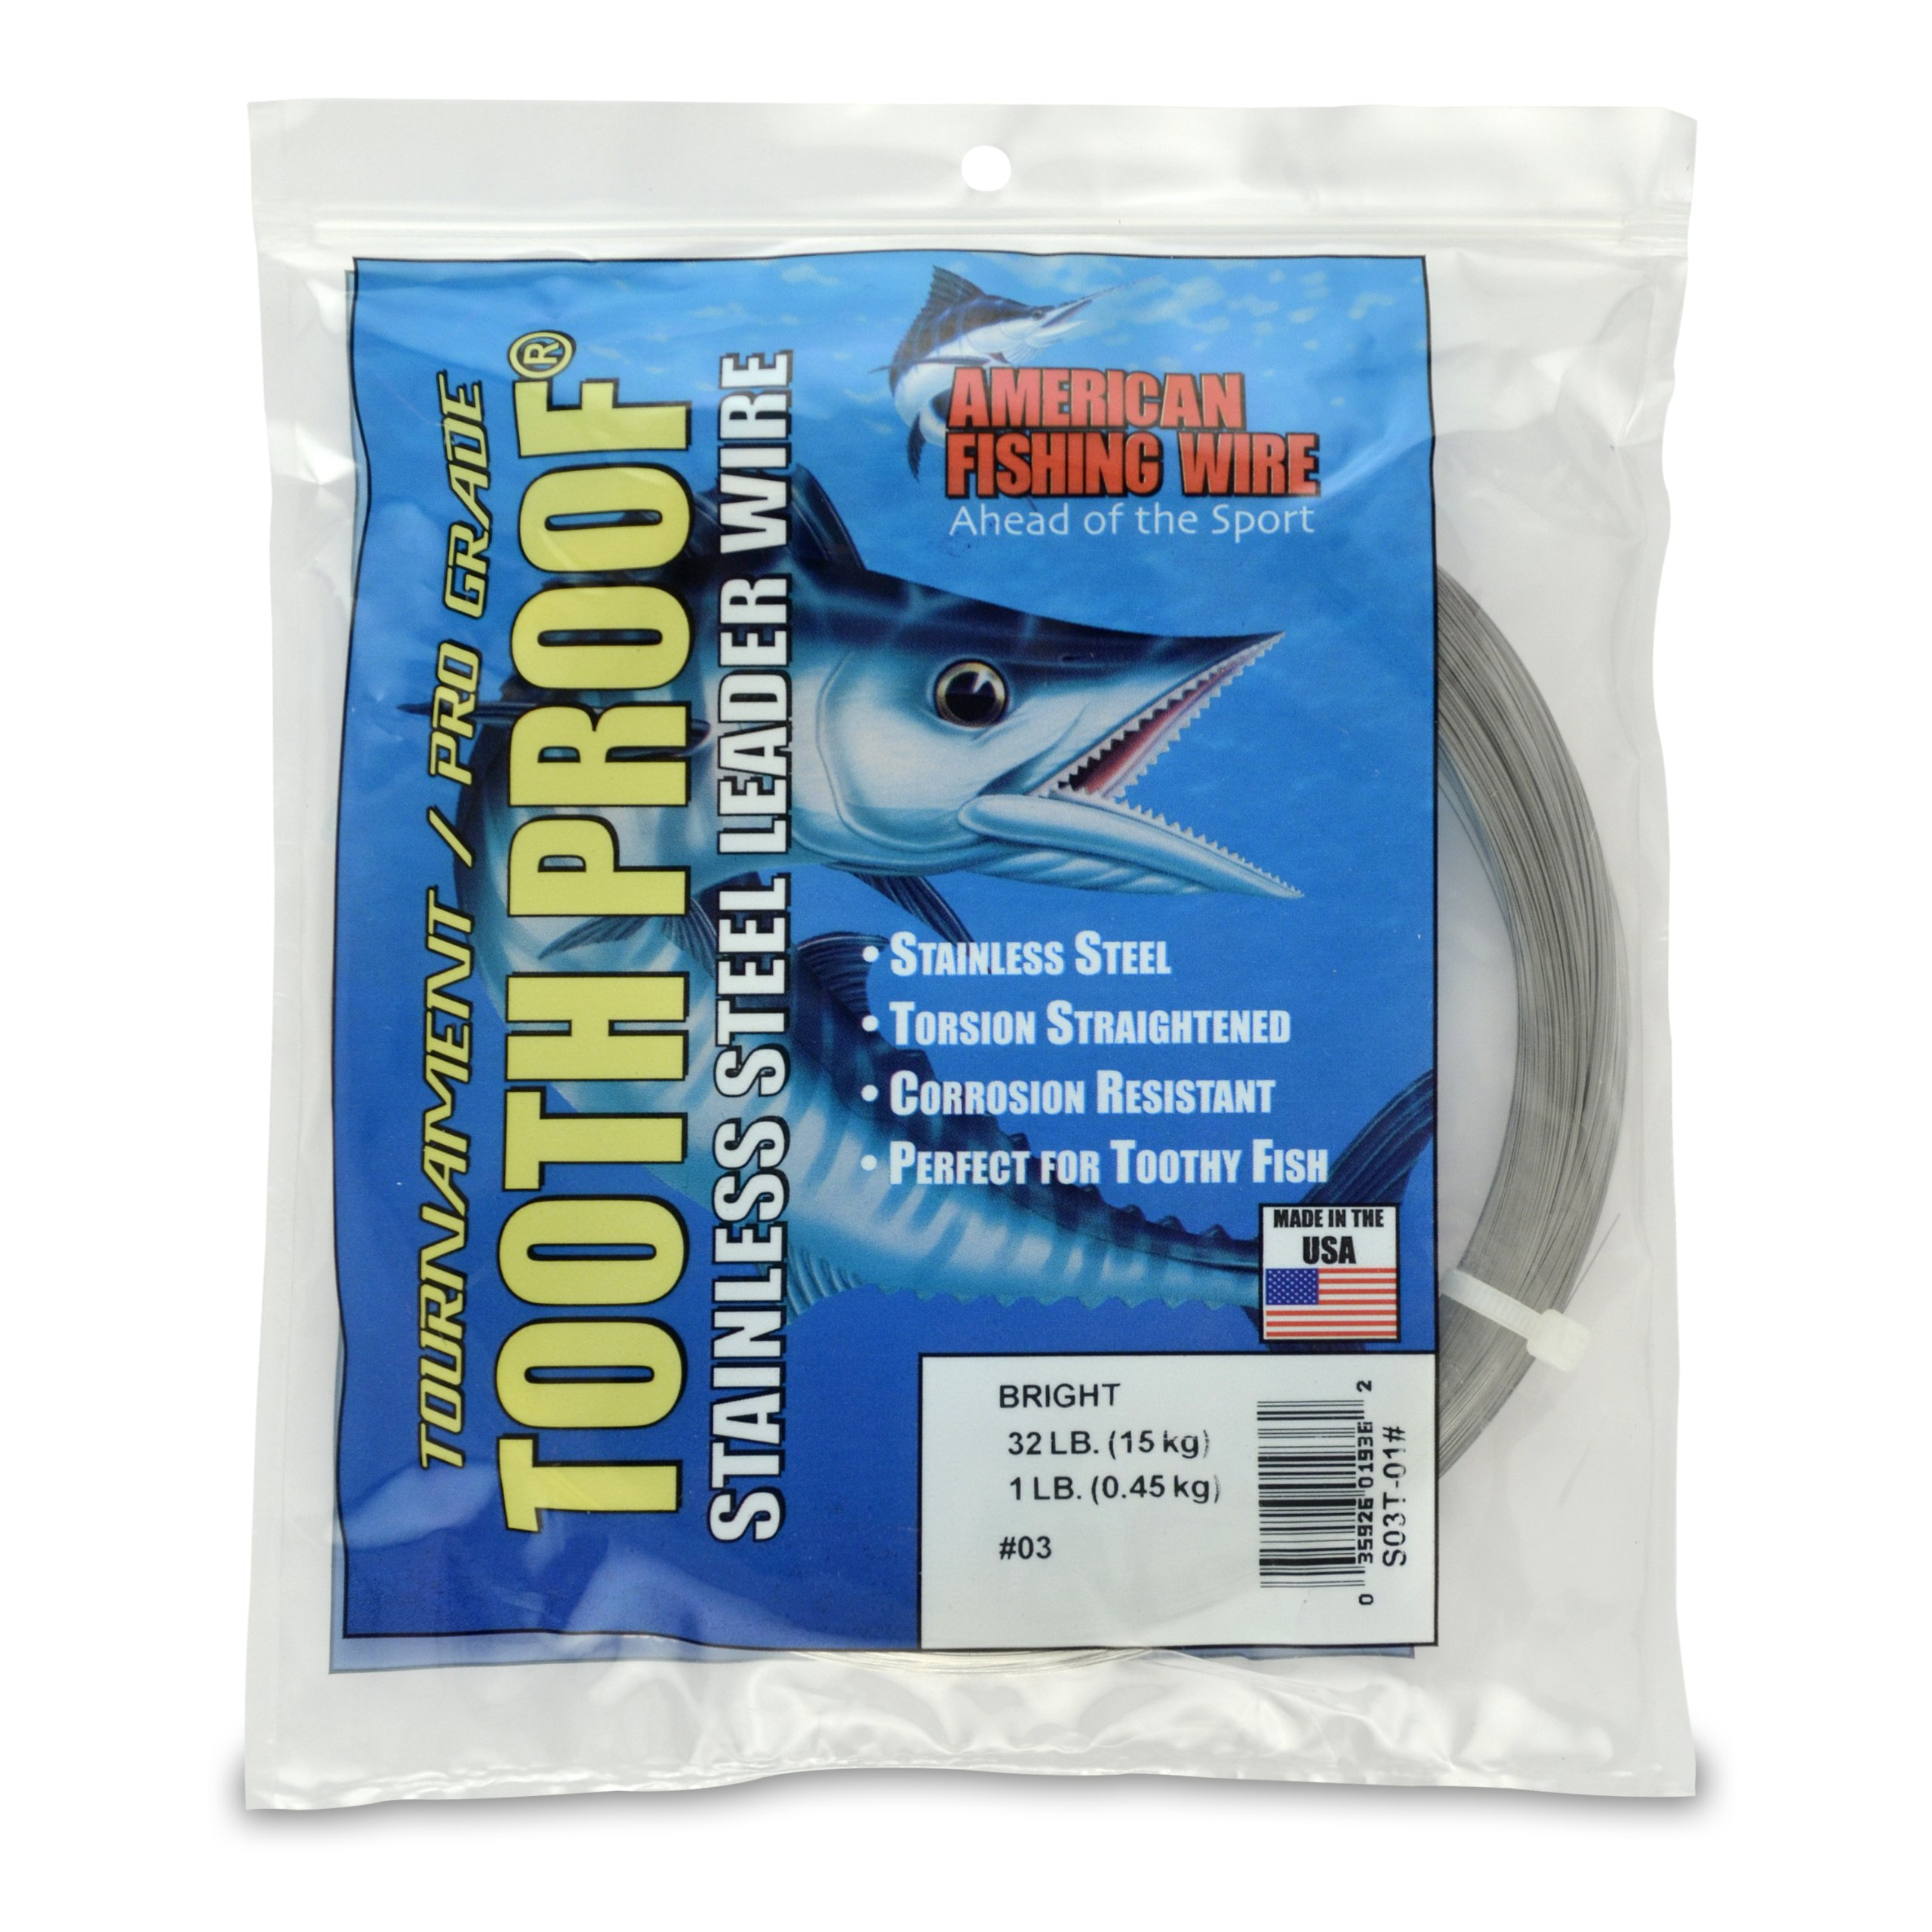 American Fishing Wire Tooth Proof Stainless Steel Single Strand Leader Wire, Size 3, Bright Color, 32 Pound Test, 1 Pound Coil